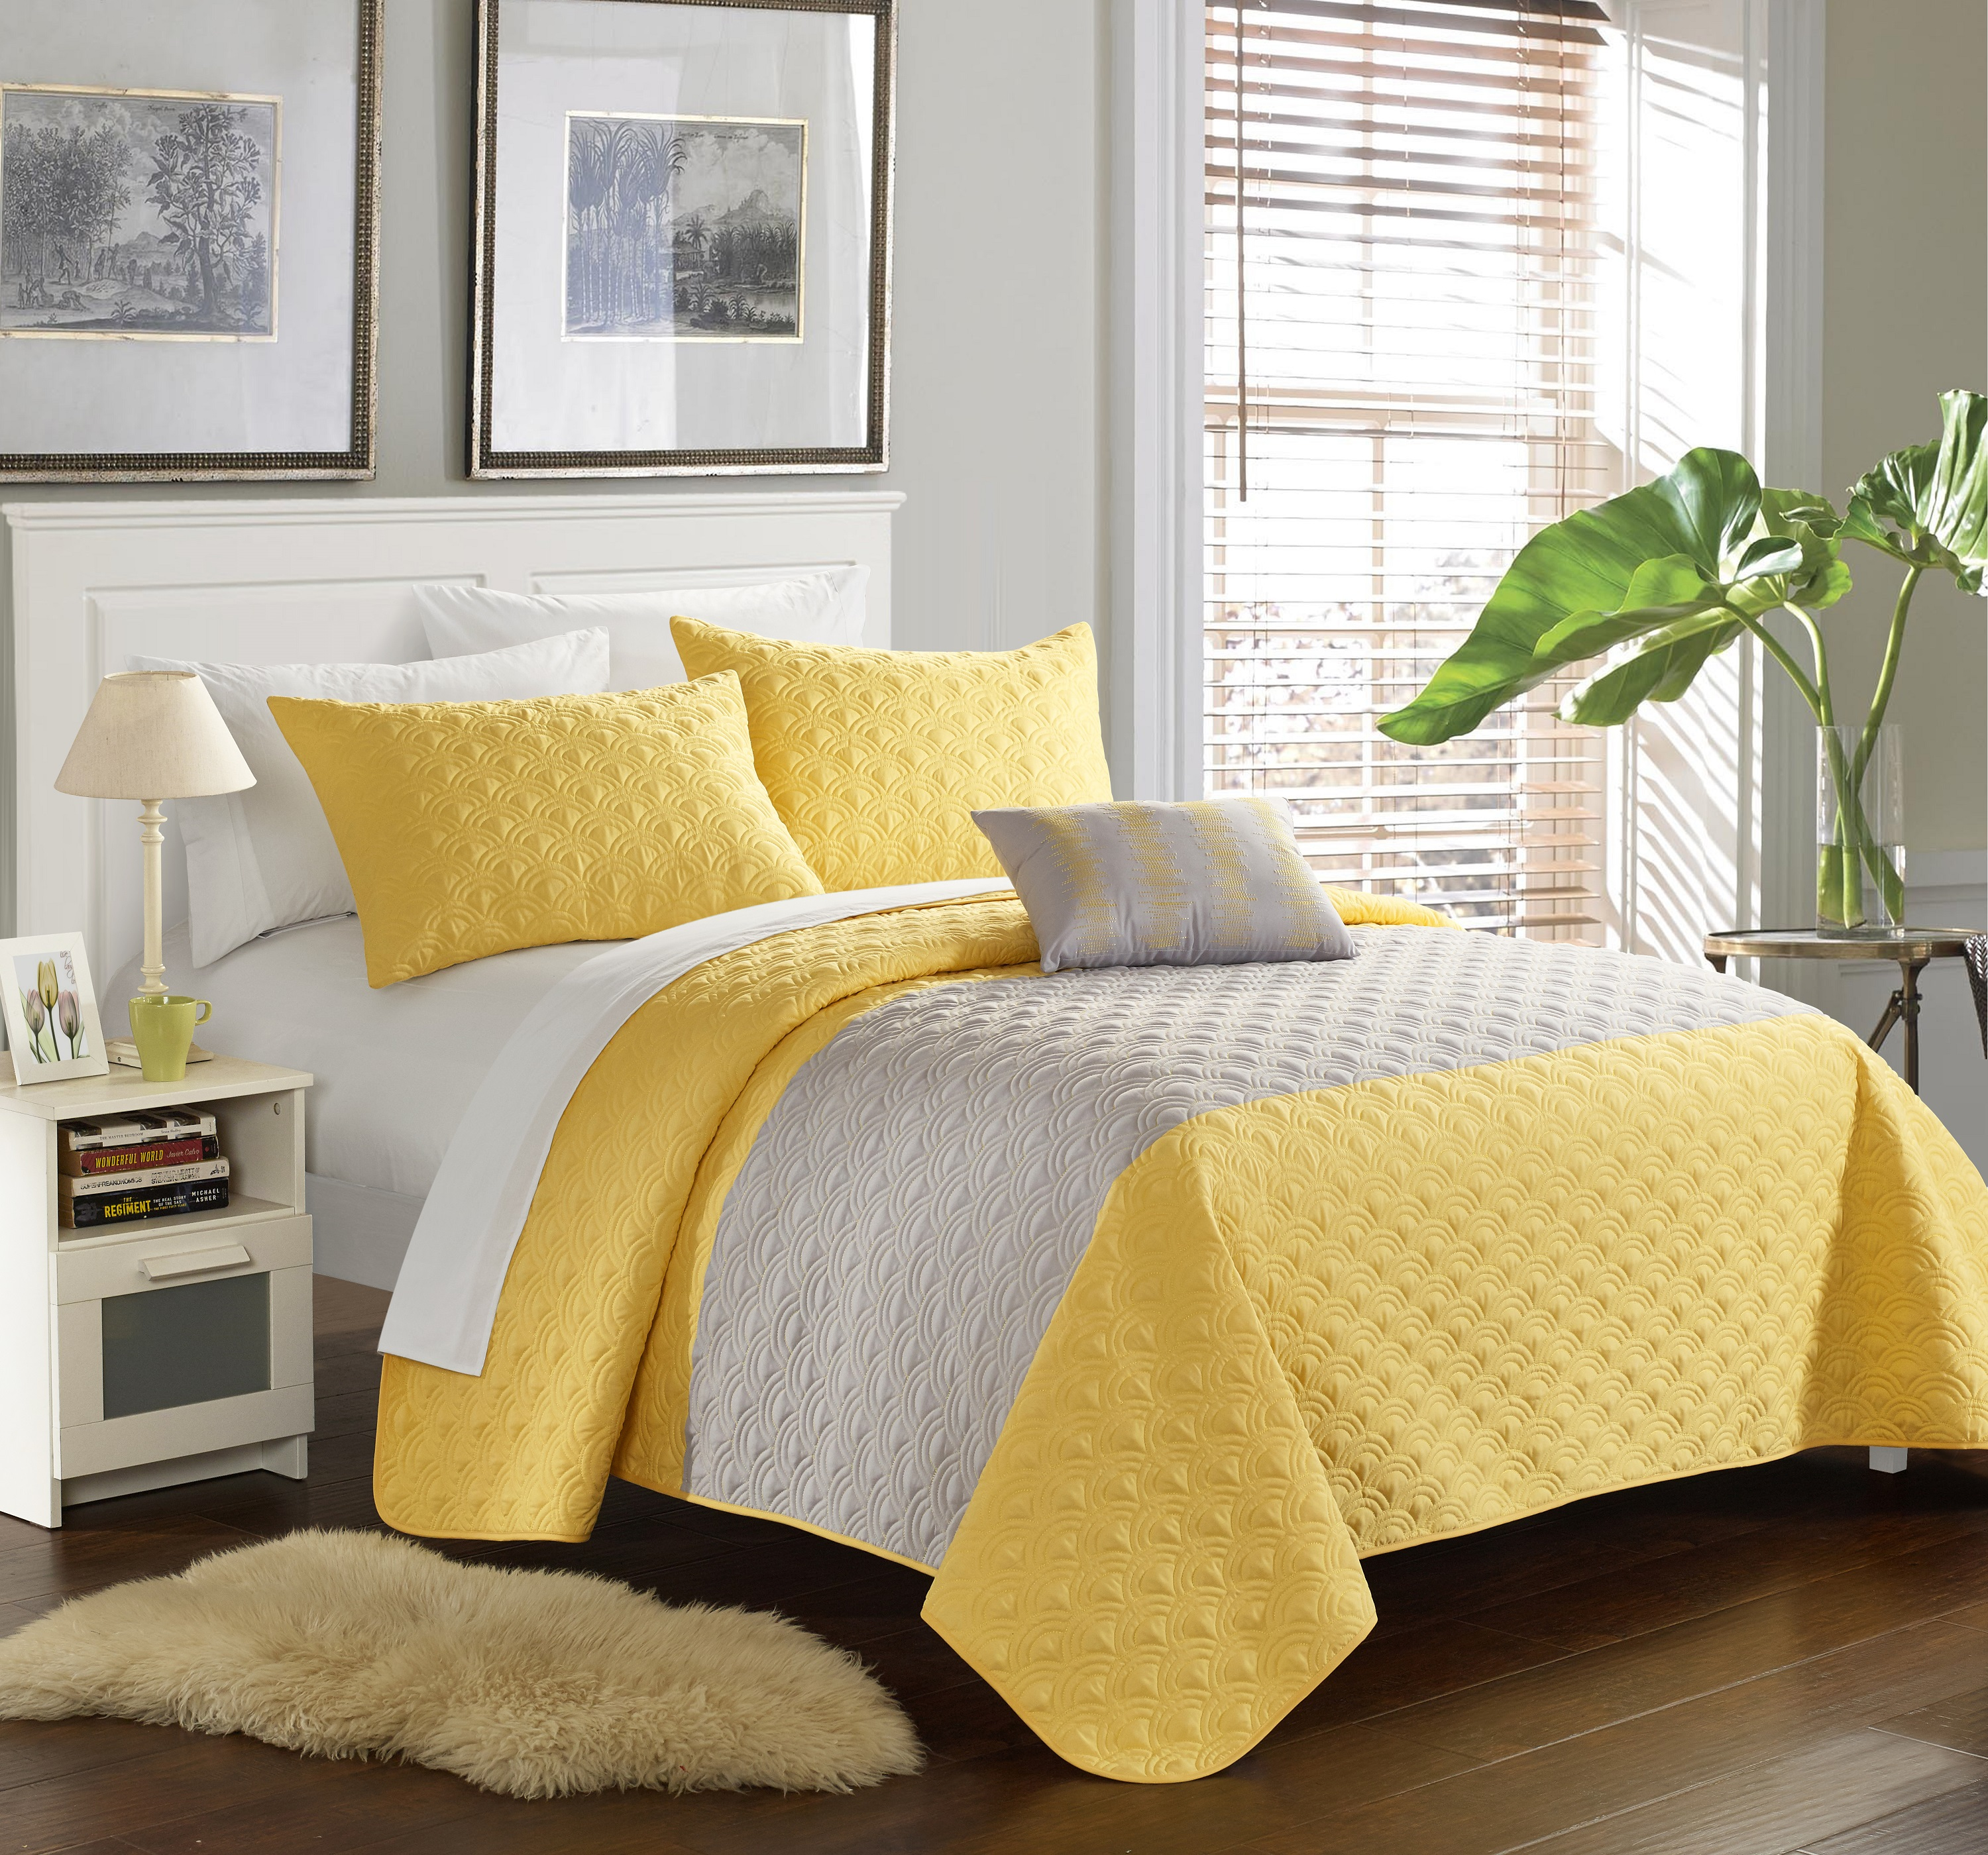 Chic Home 8-Piece Walker Geometric Quilting Embroidery Queen Quilt Set Yellow With White Sheets included